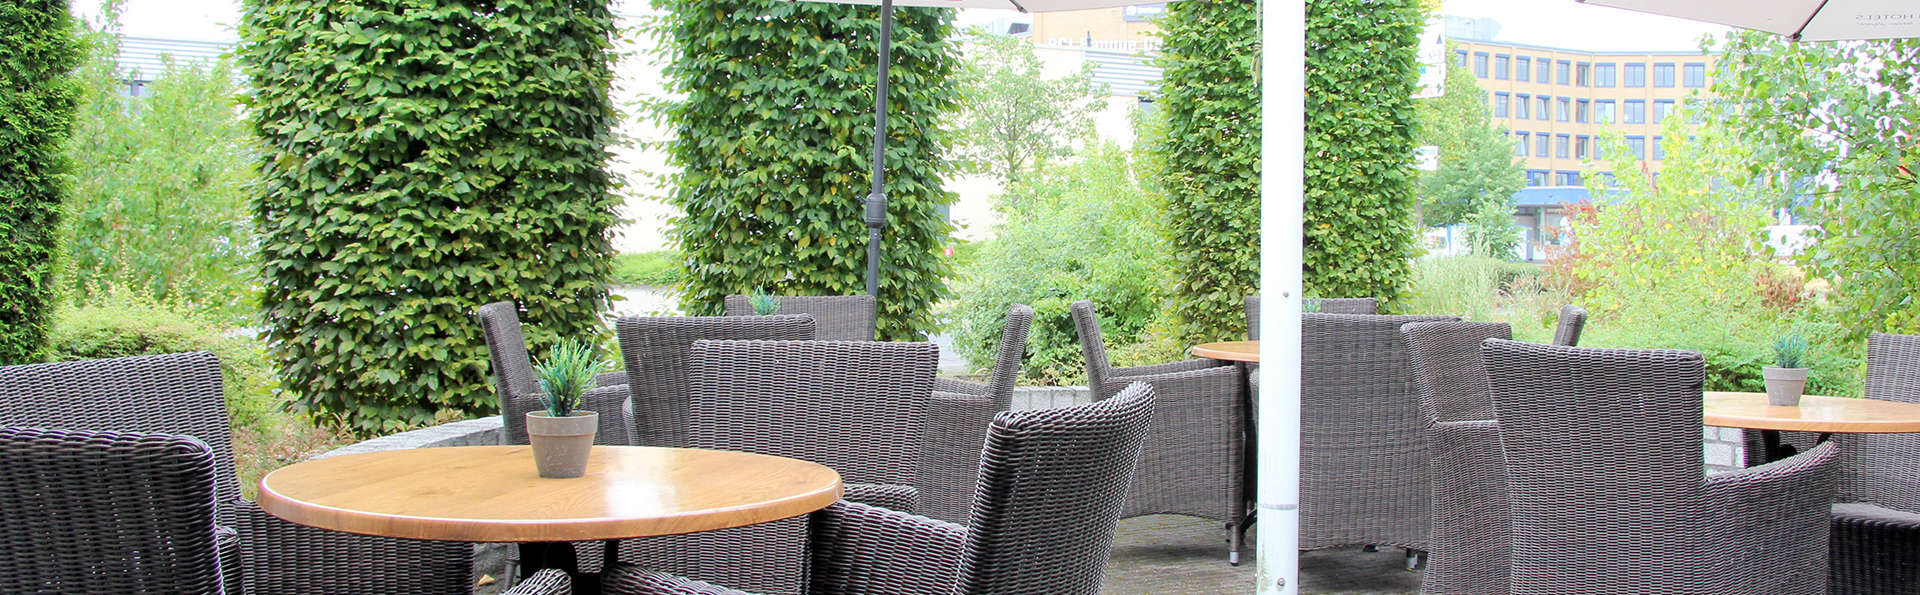 Bastion Hotel Dusseldorf Neuss - Edit_Terrace.jpg